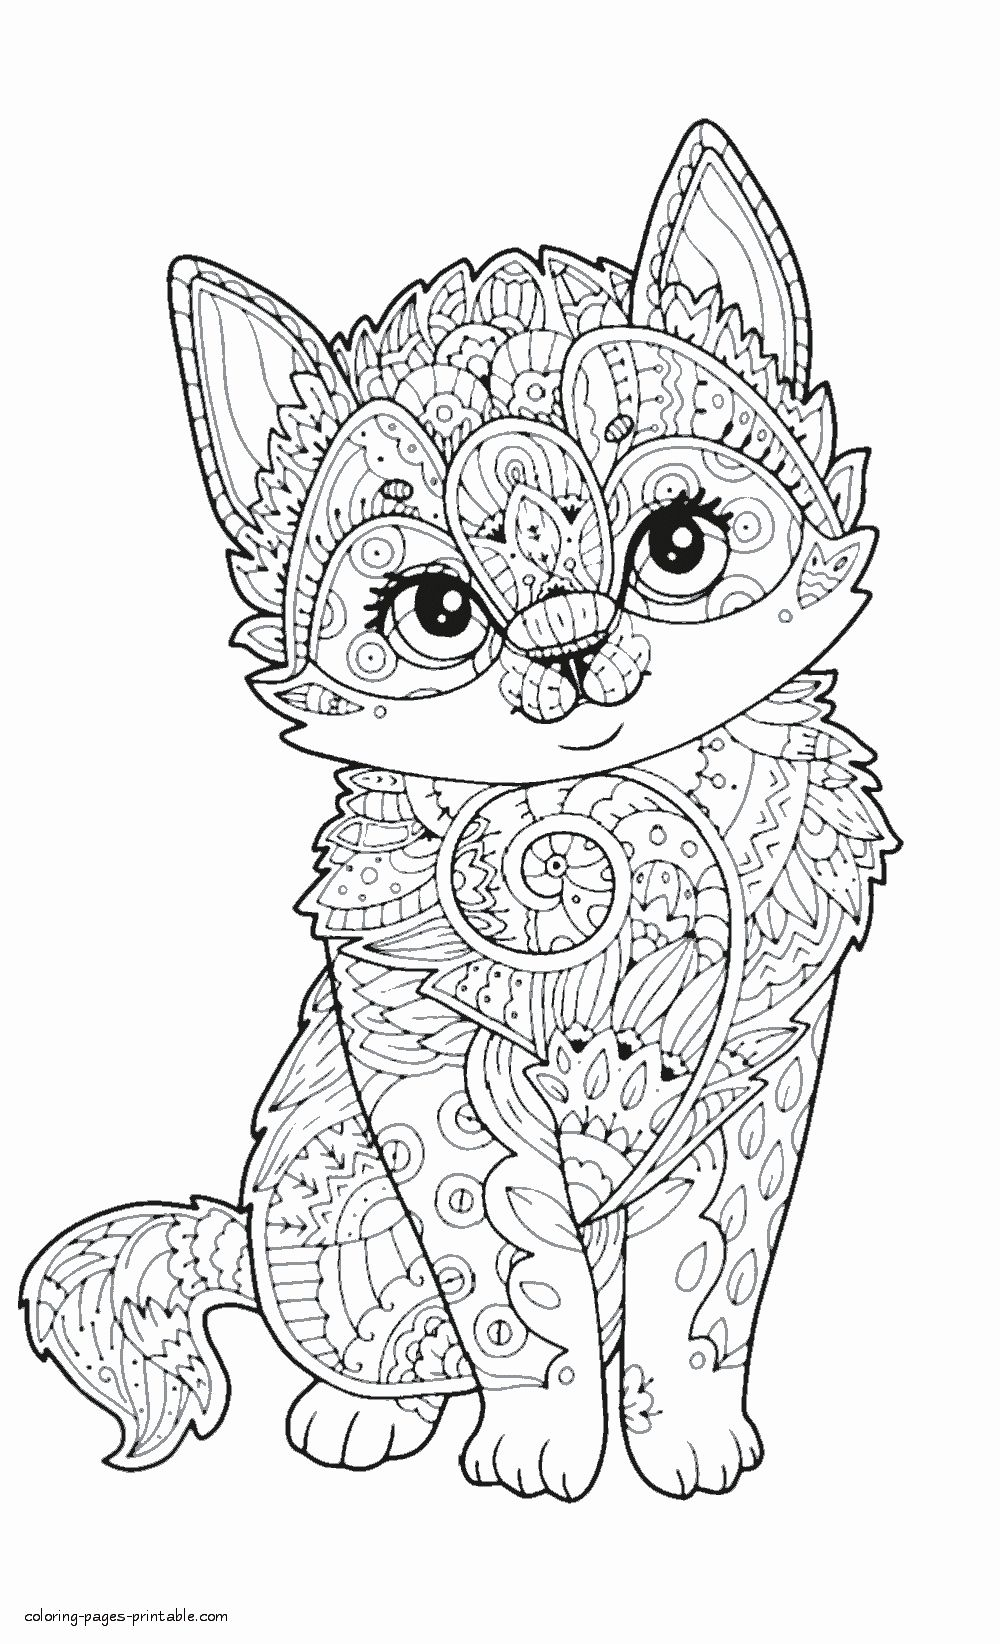 Cute Animals Coloring Pages In 2020 Adult Coloring Animals Zoo Animal Coloring Pages Cute Kawaii Animals